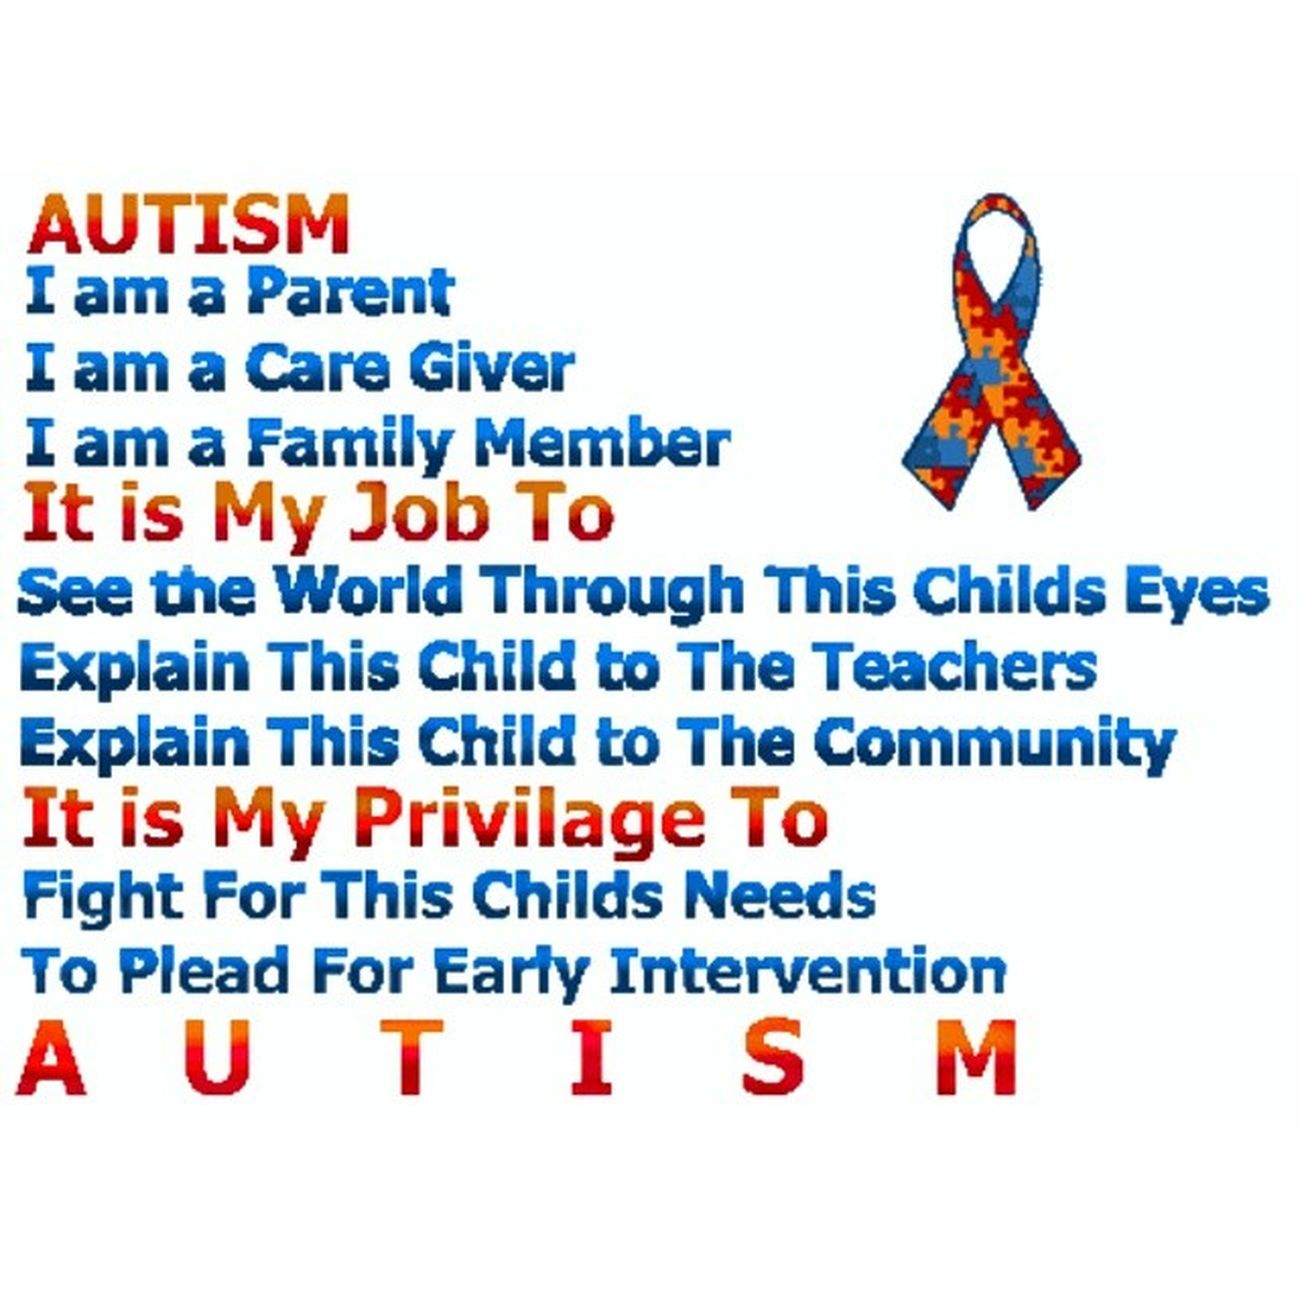 Had the privilege to work these kids. Yeah they may be a pain in the ass but in a weird way gotta love them and help them in every way I can yo make their lives a bit much more easier so they won't be looked at as weird but as normal people :) AustimAwarenessMonth BlueAllTheWay T MyFavoriteKid